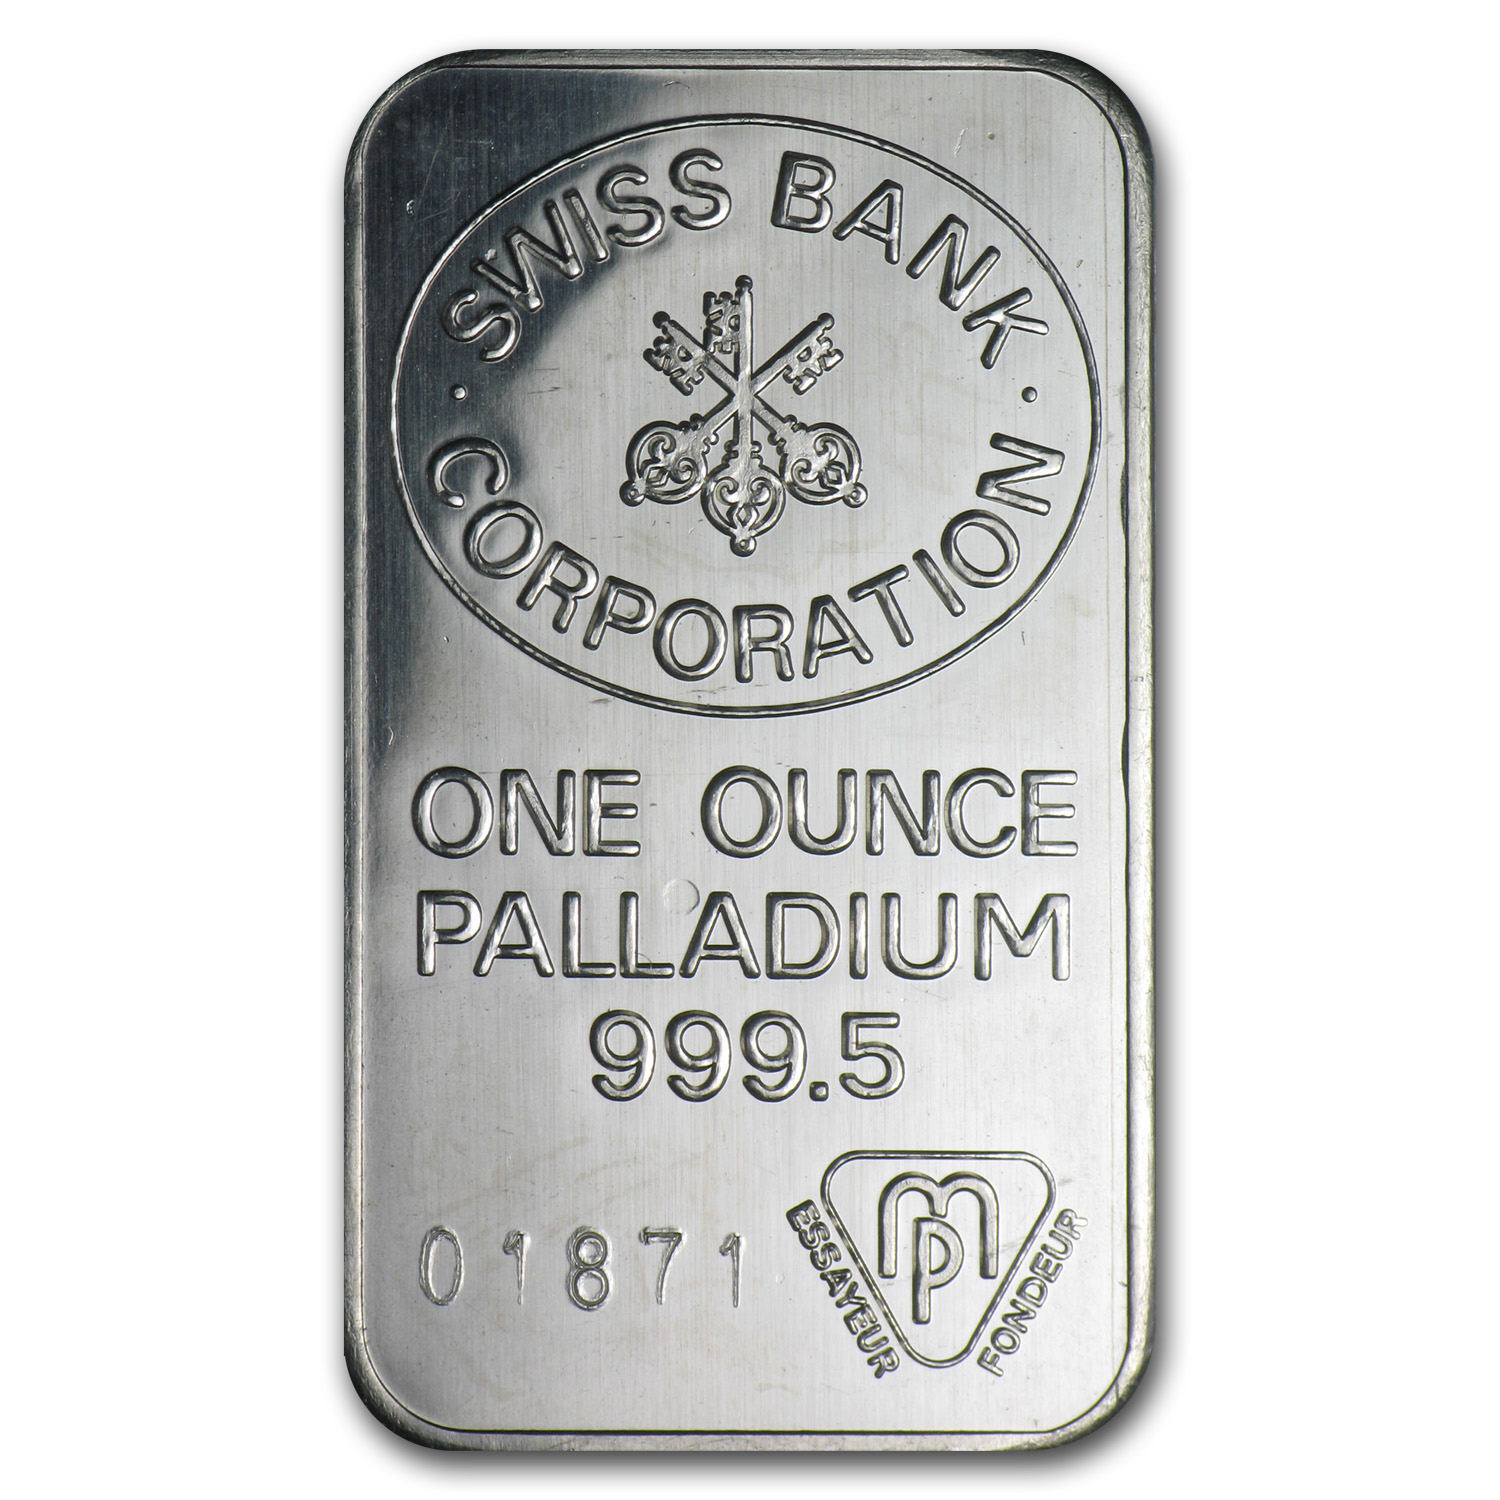 1 oz Palladium Bar - Swiss Bank Corporation